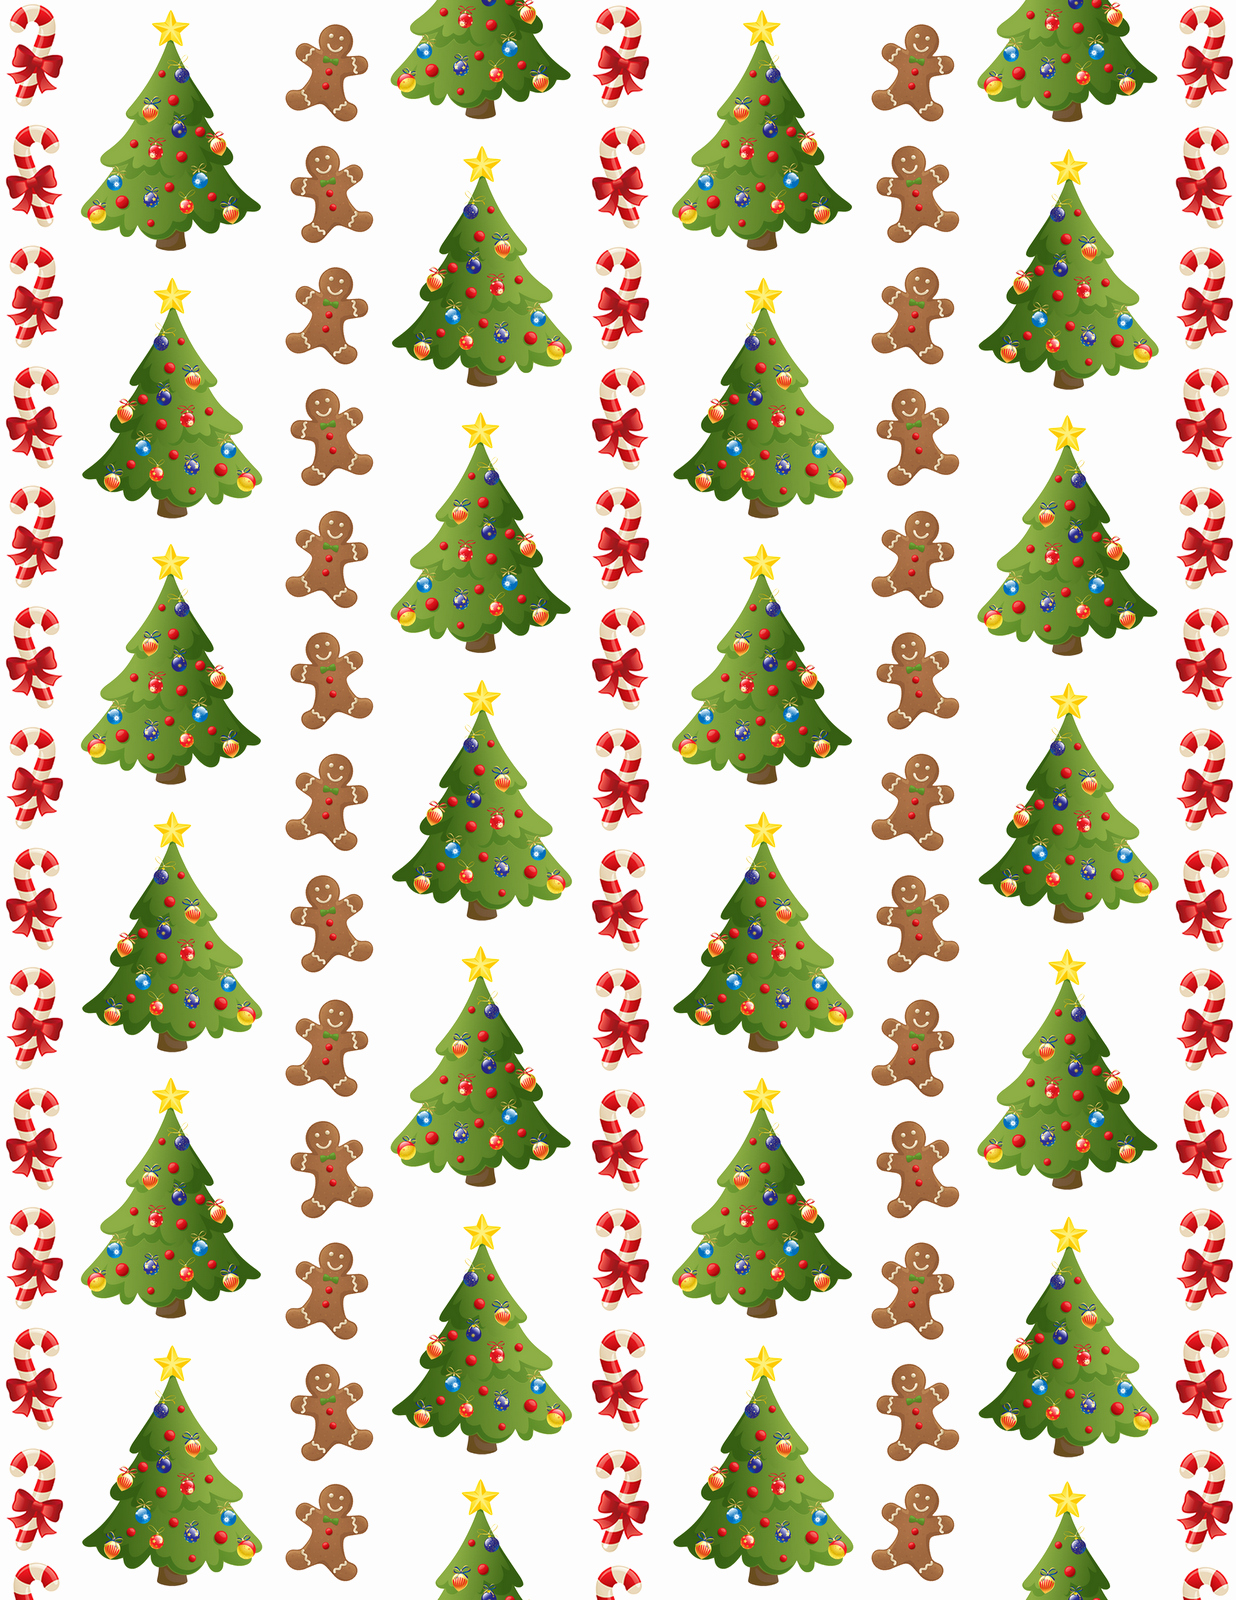 Christmas Paper to Print Unique Free Scrapbook Printables